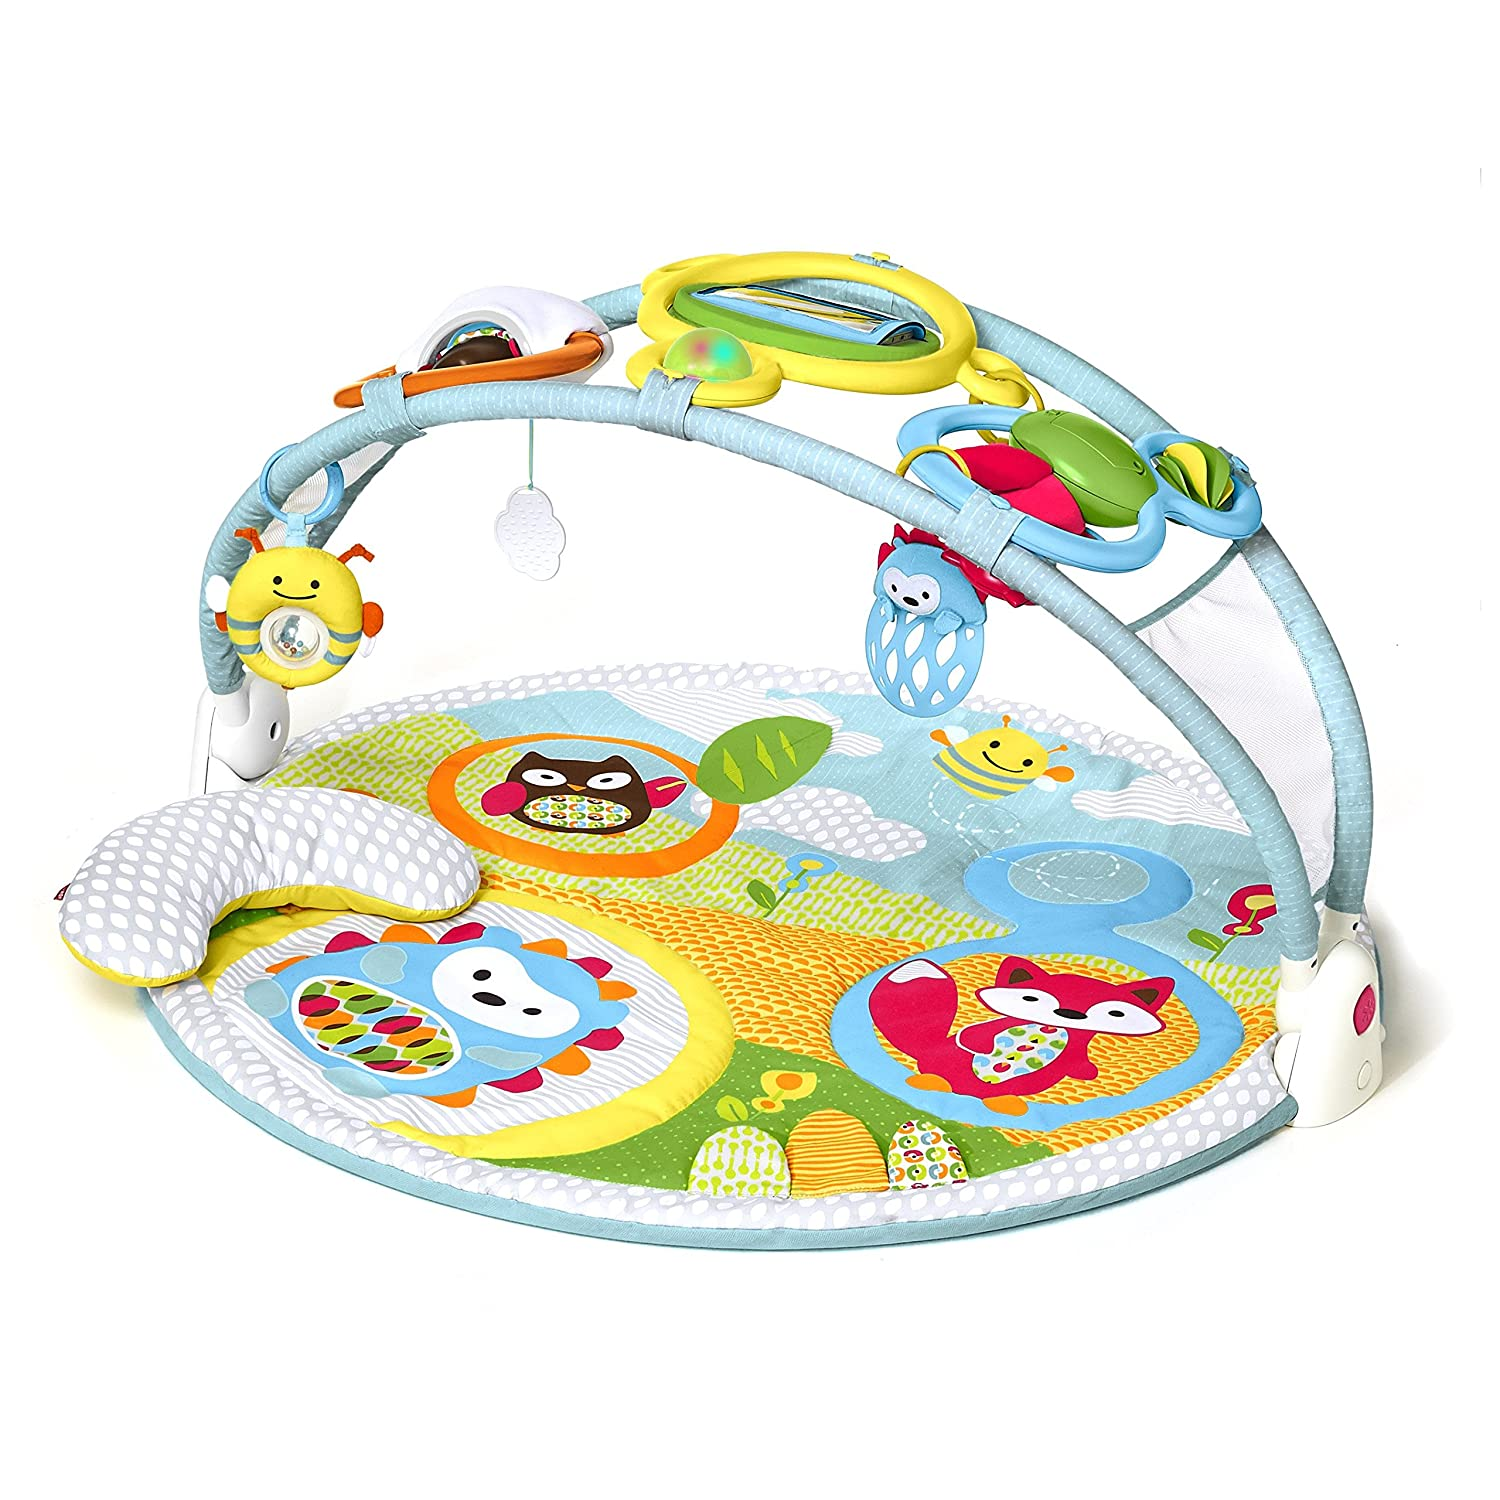 "Skip Hop Explore & More Amazing Arch Baby Play Mat Activity Gym, 36"" x 19""h, Multi Colored"